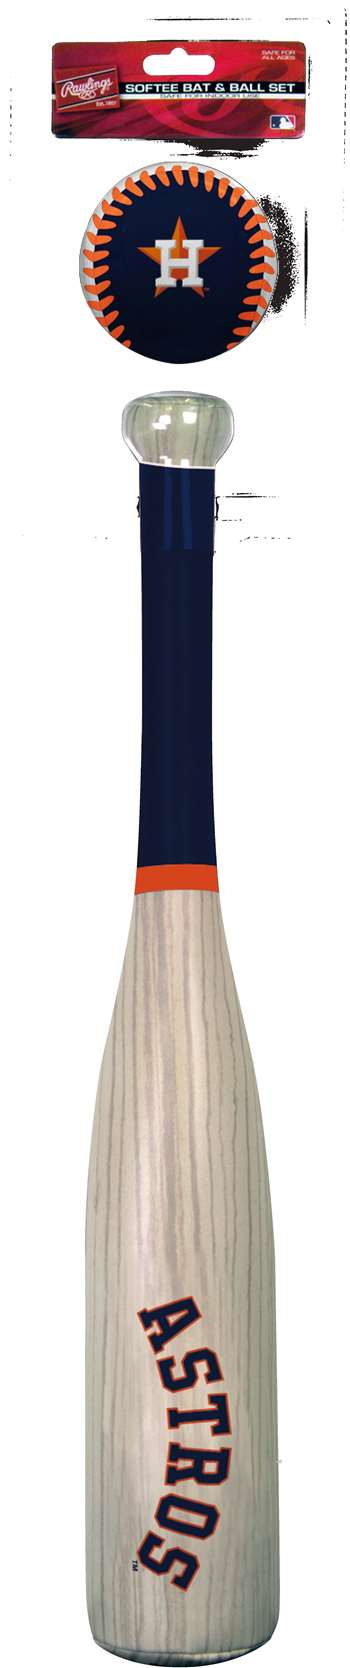 MLB Houston Astros Grand Slam Softee Baseball Bat and Ball Set (Wood Grain)